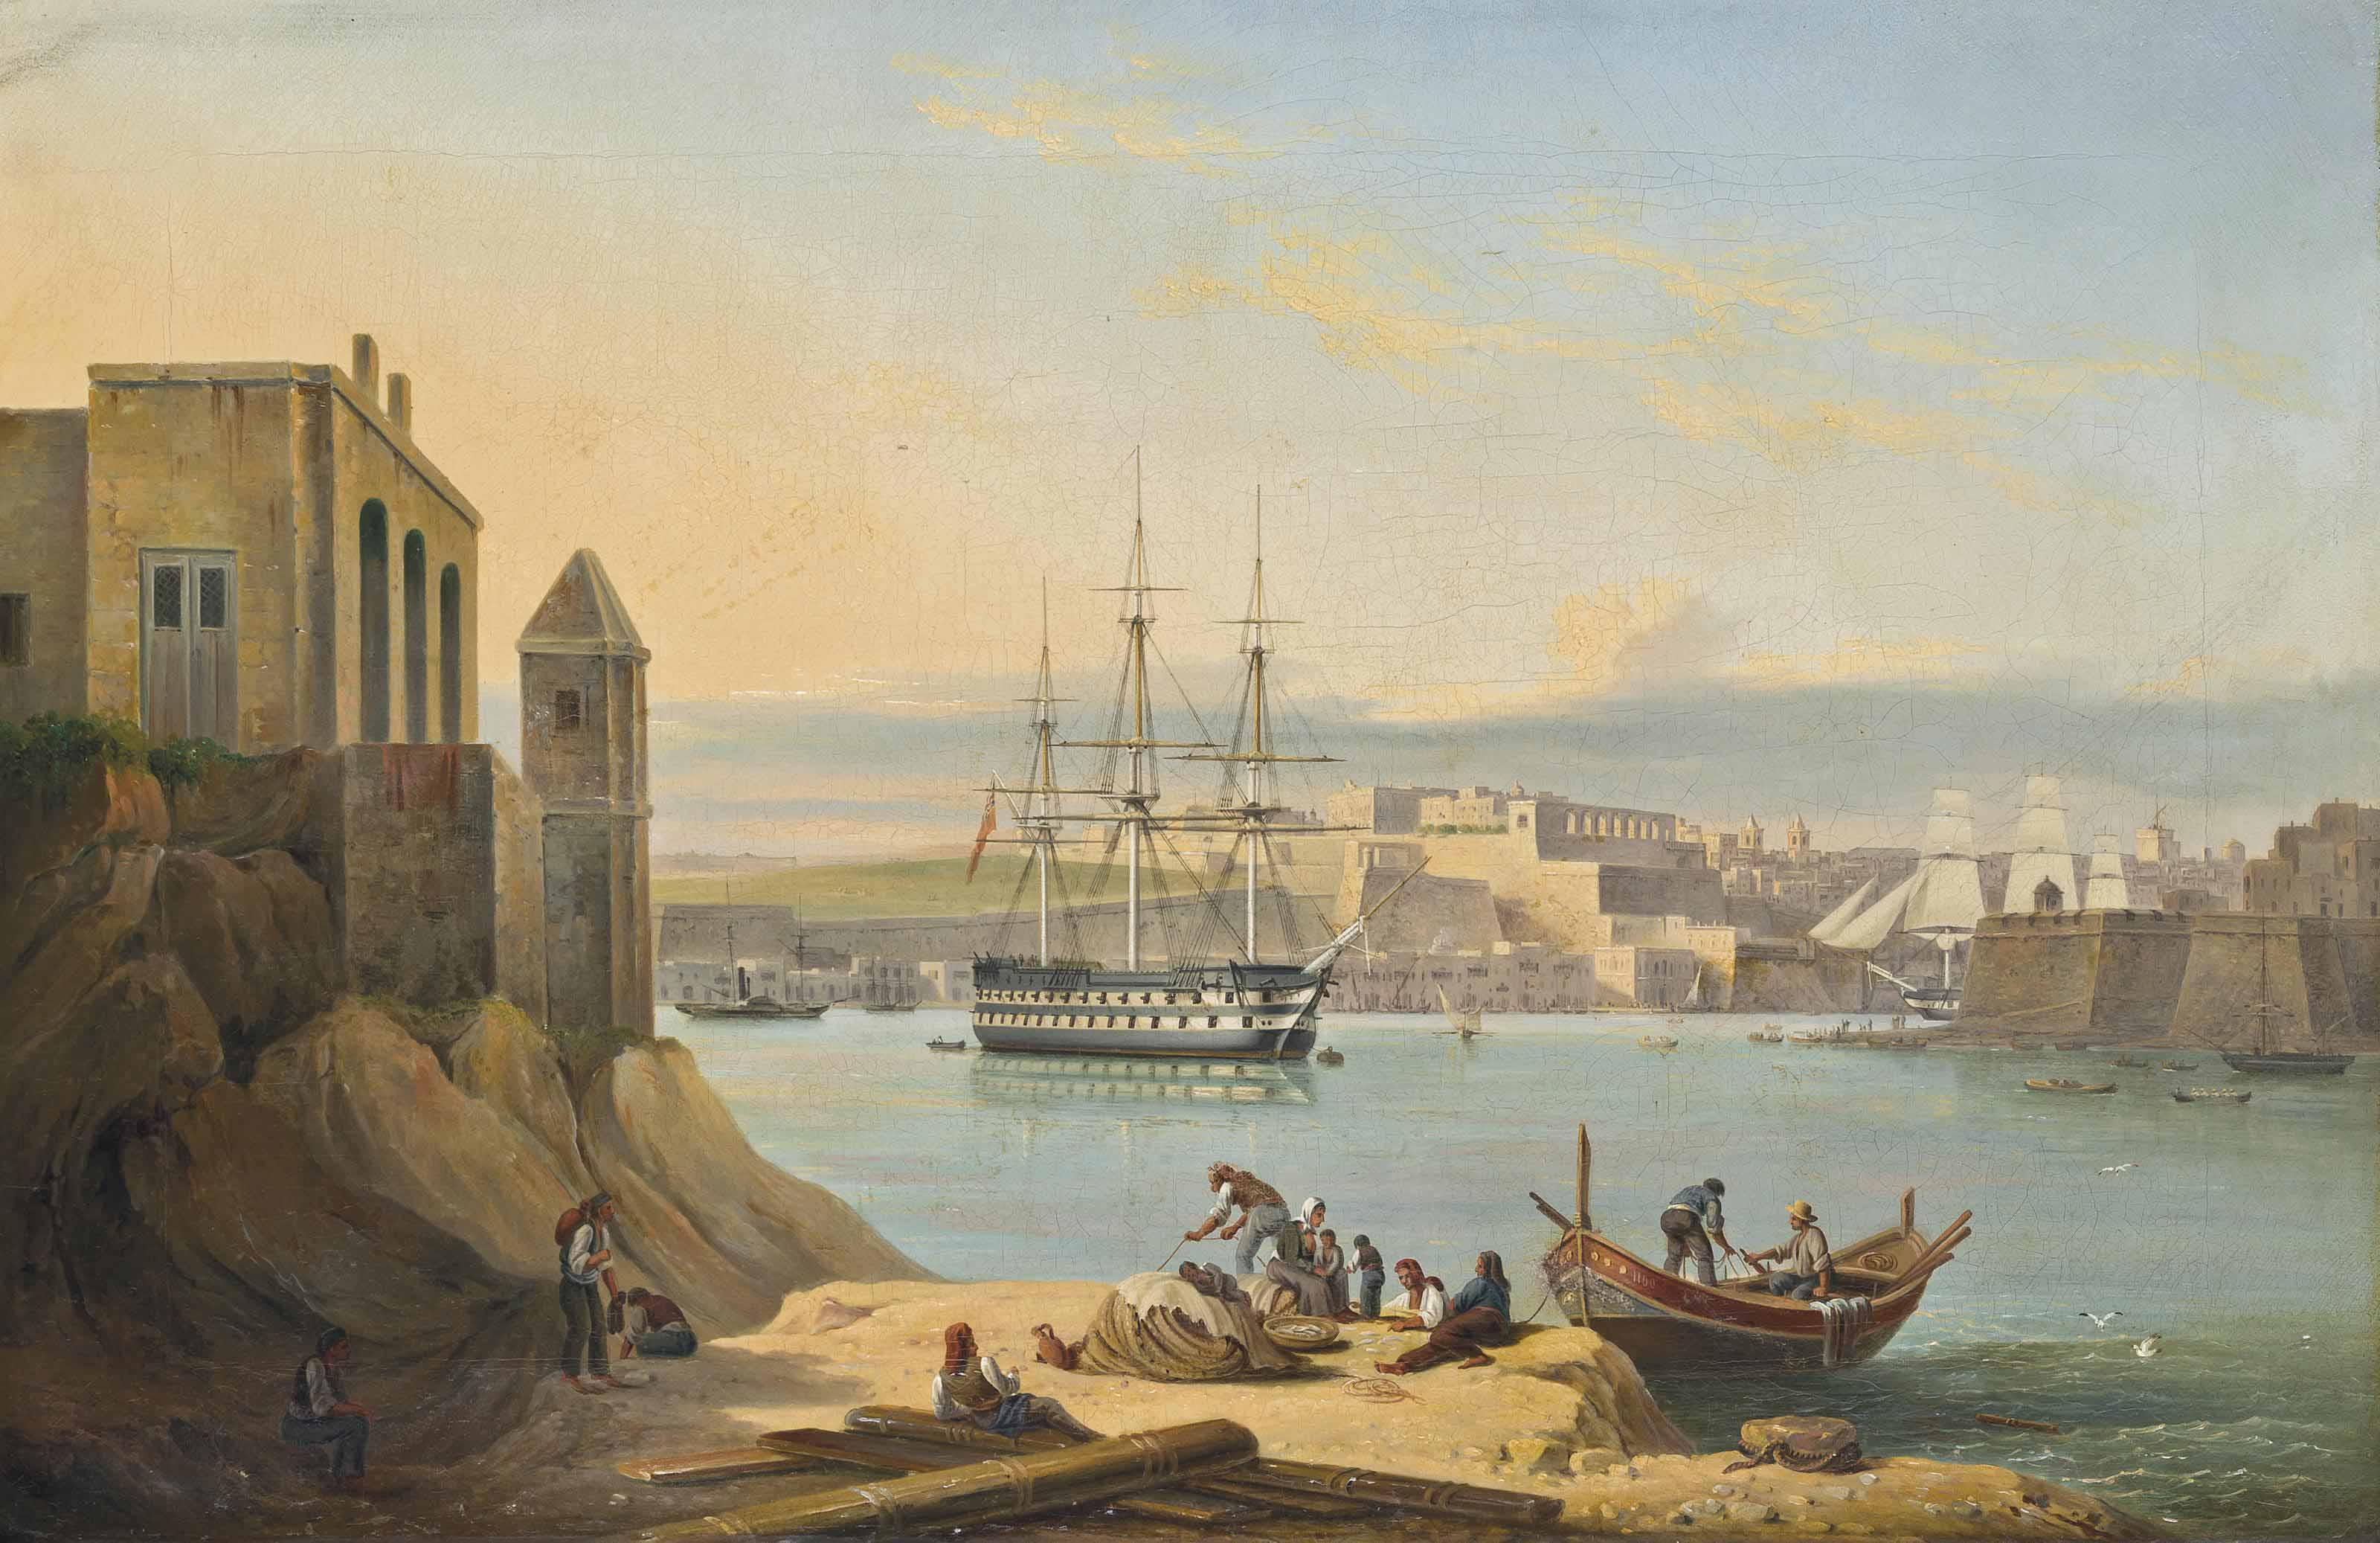 The flagship, H.M.S. Asia, lying at anchor in the Grand Harbour, Valetta, Malta